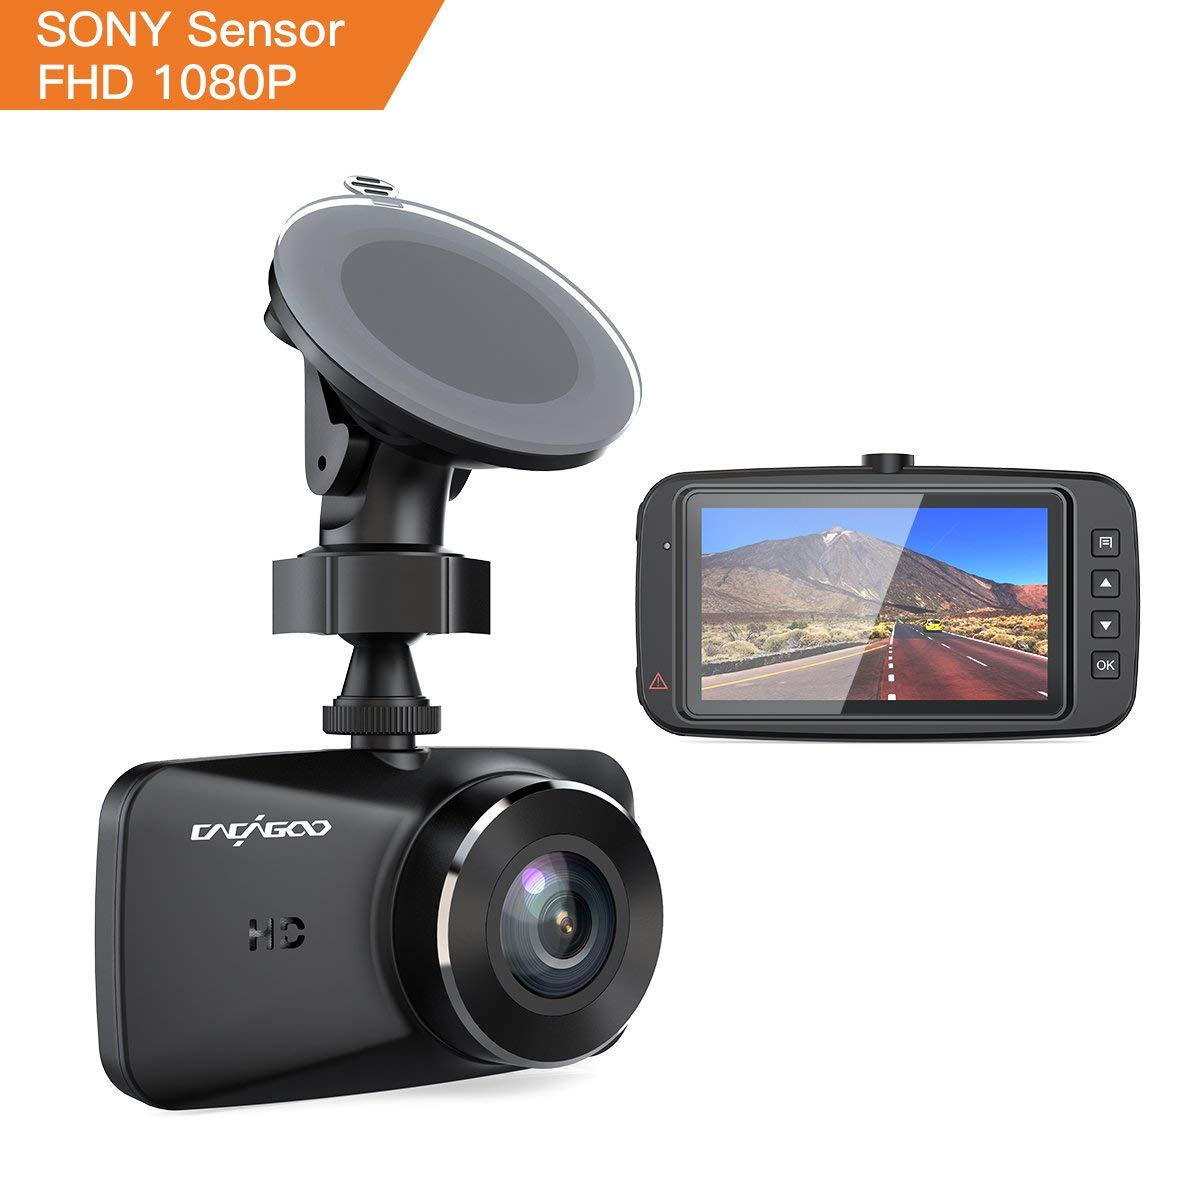 Camera Exterieur Grand Angle Caméra De Voiture Embarqué Grand Angle 6g à 28 59 Amazon Fr